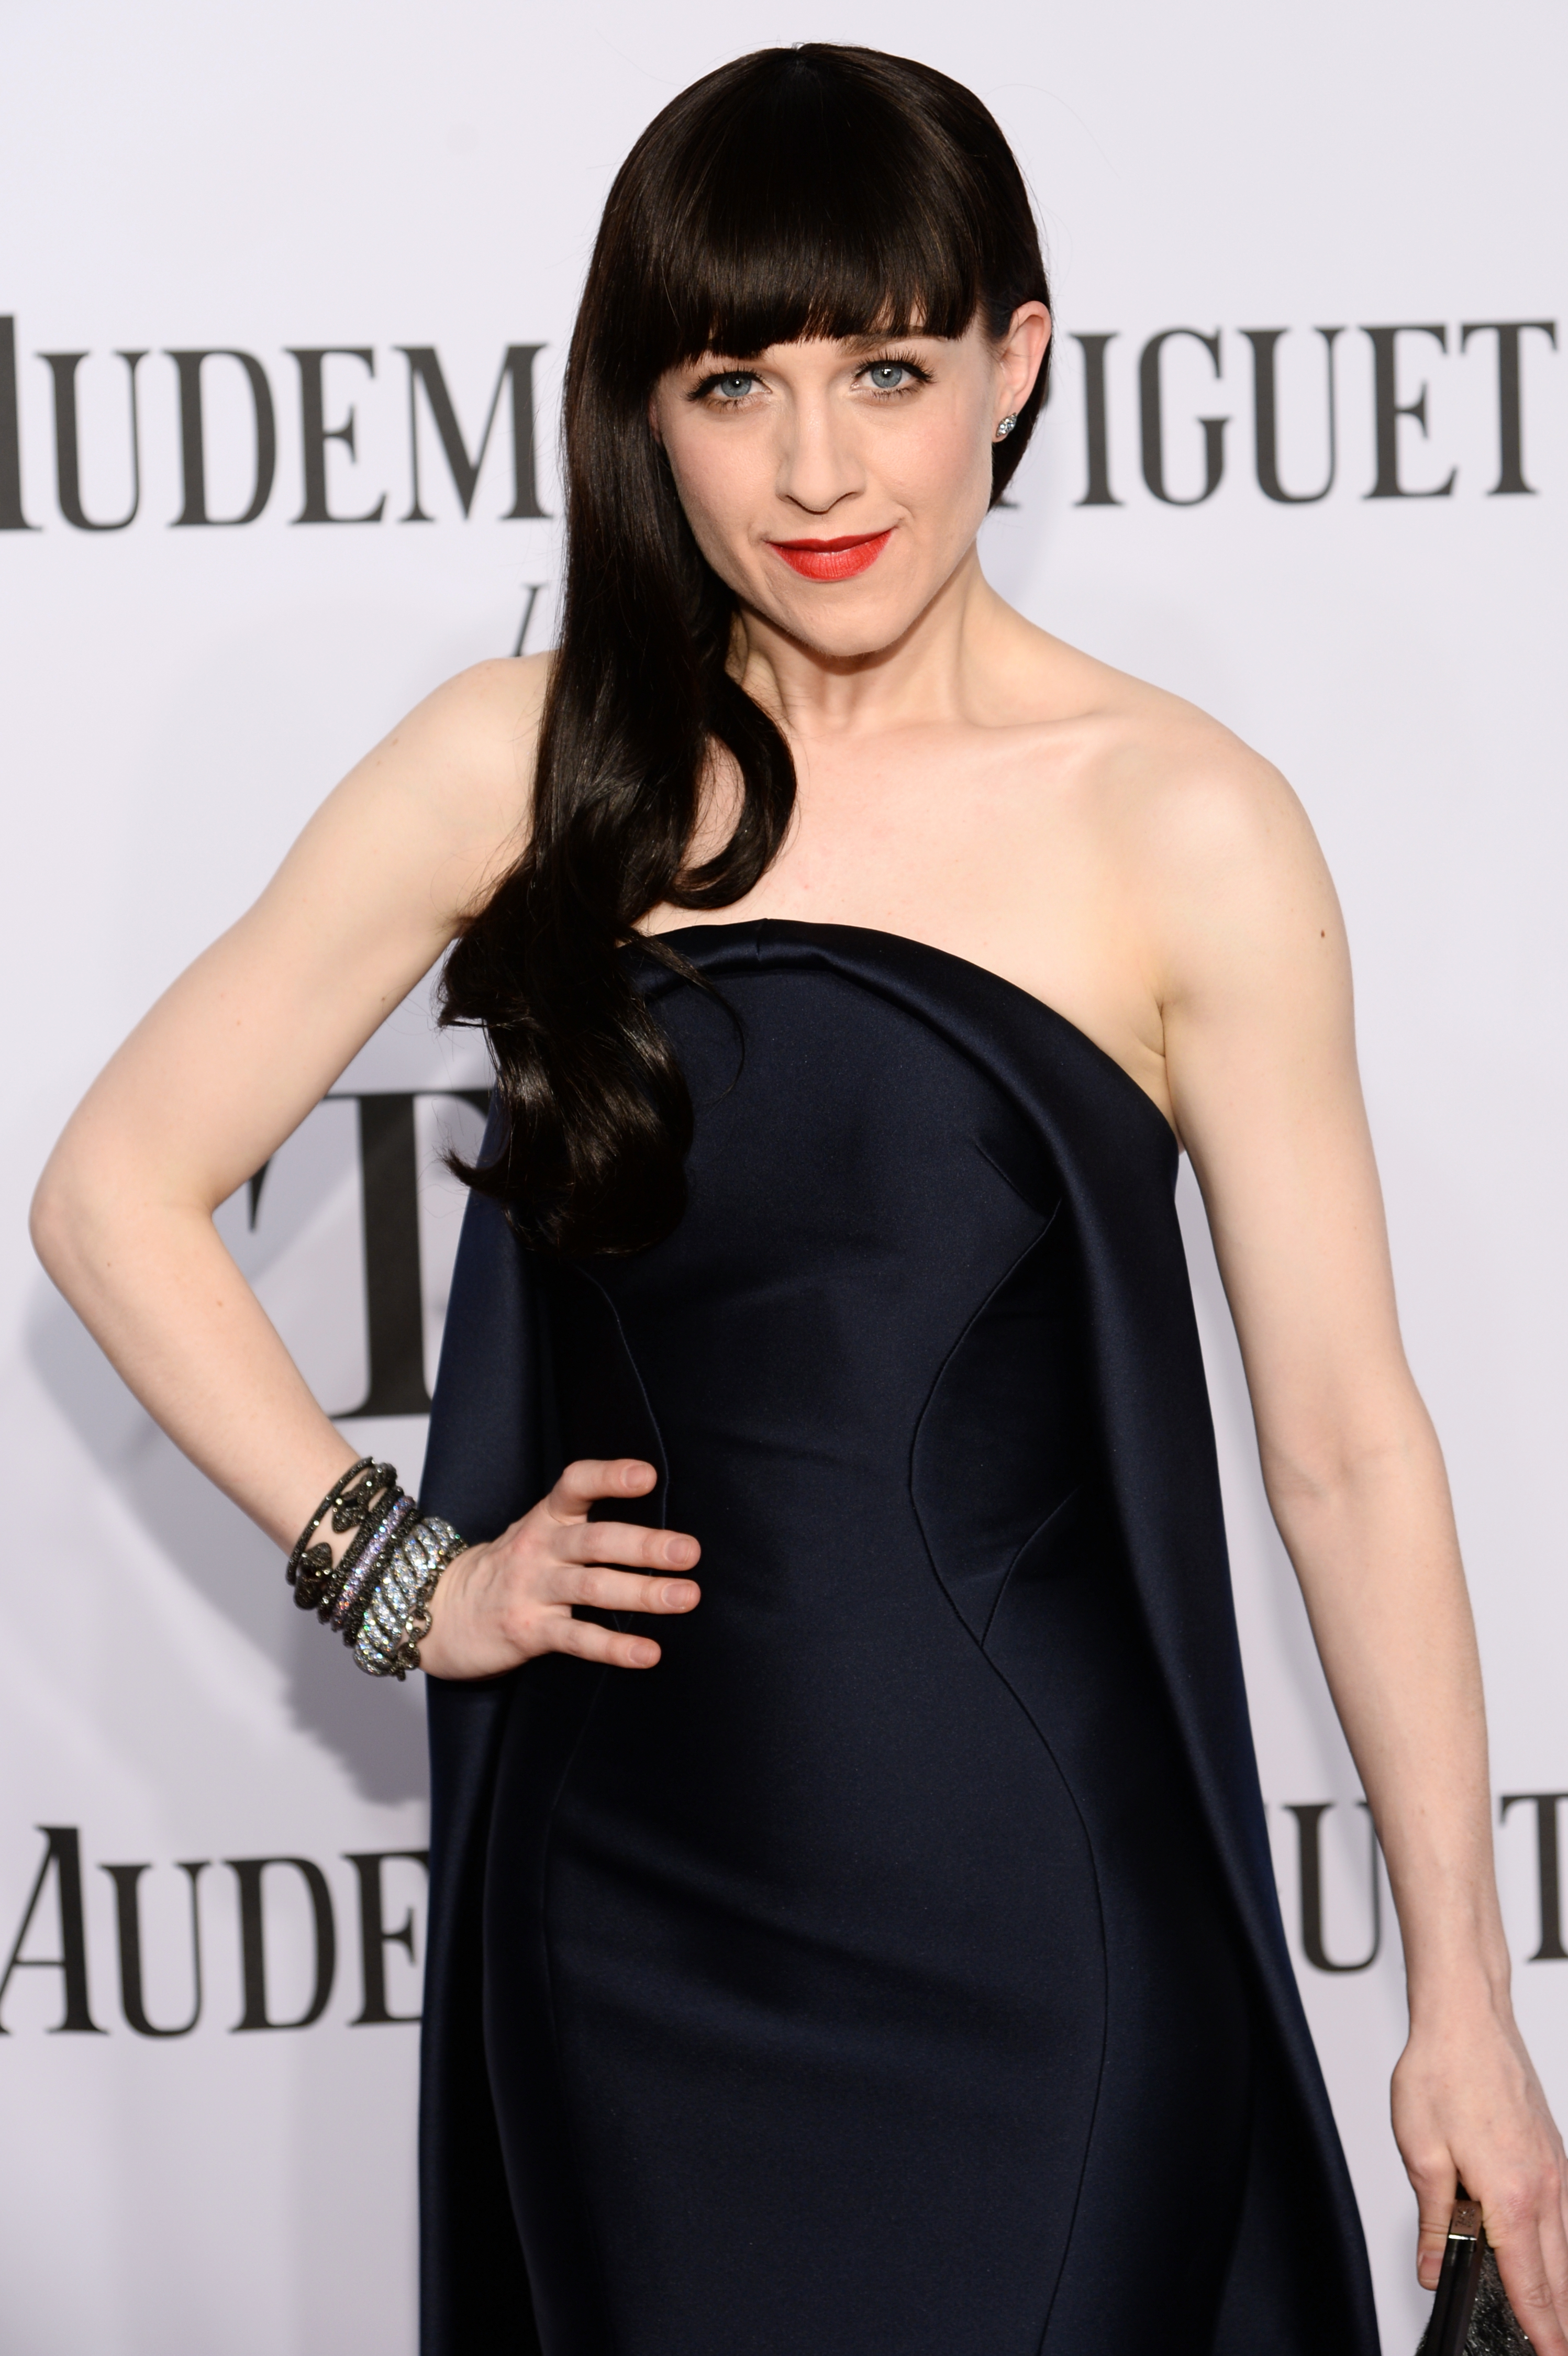 Actress Lena Hall attends the 68th Annual Tony Awards at Radio City Music Hall on June 8, 2014 in New York City.